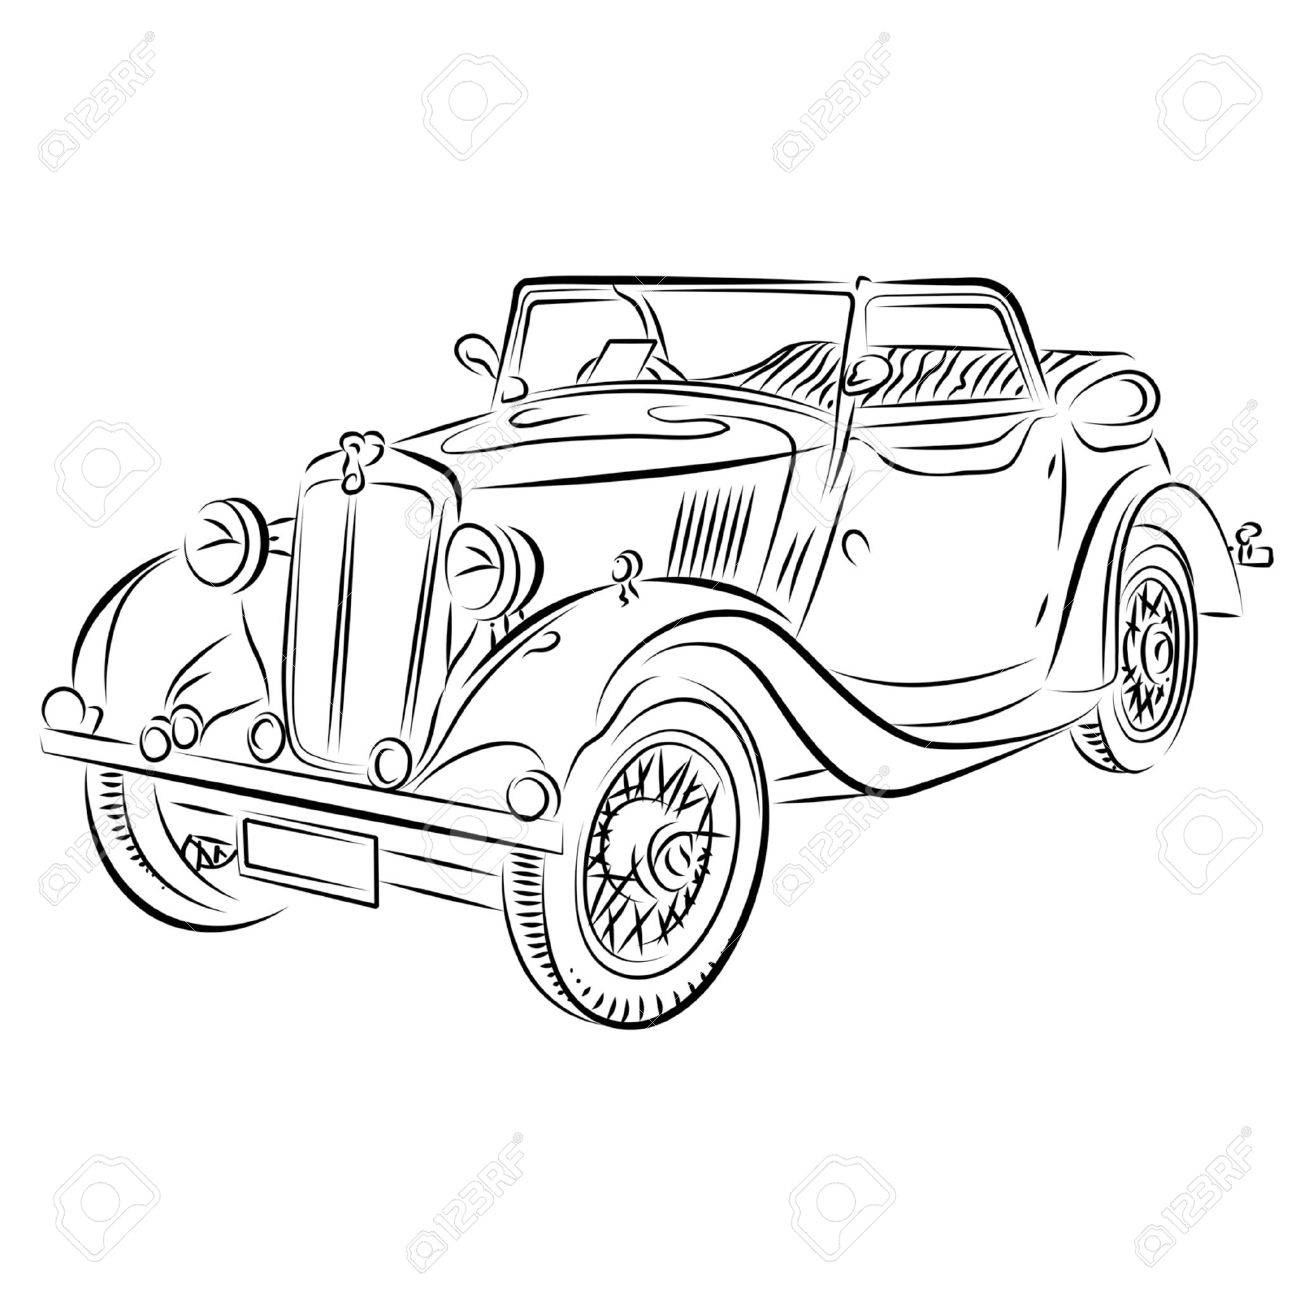 Drawing of the retro car. Stock Vector - 10577096